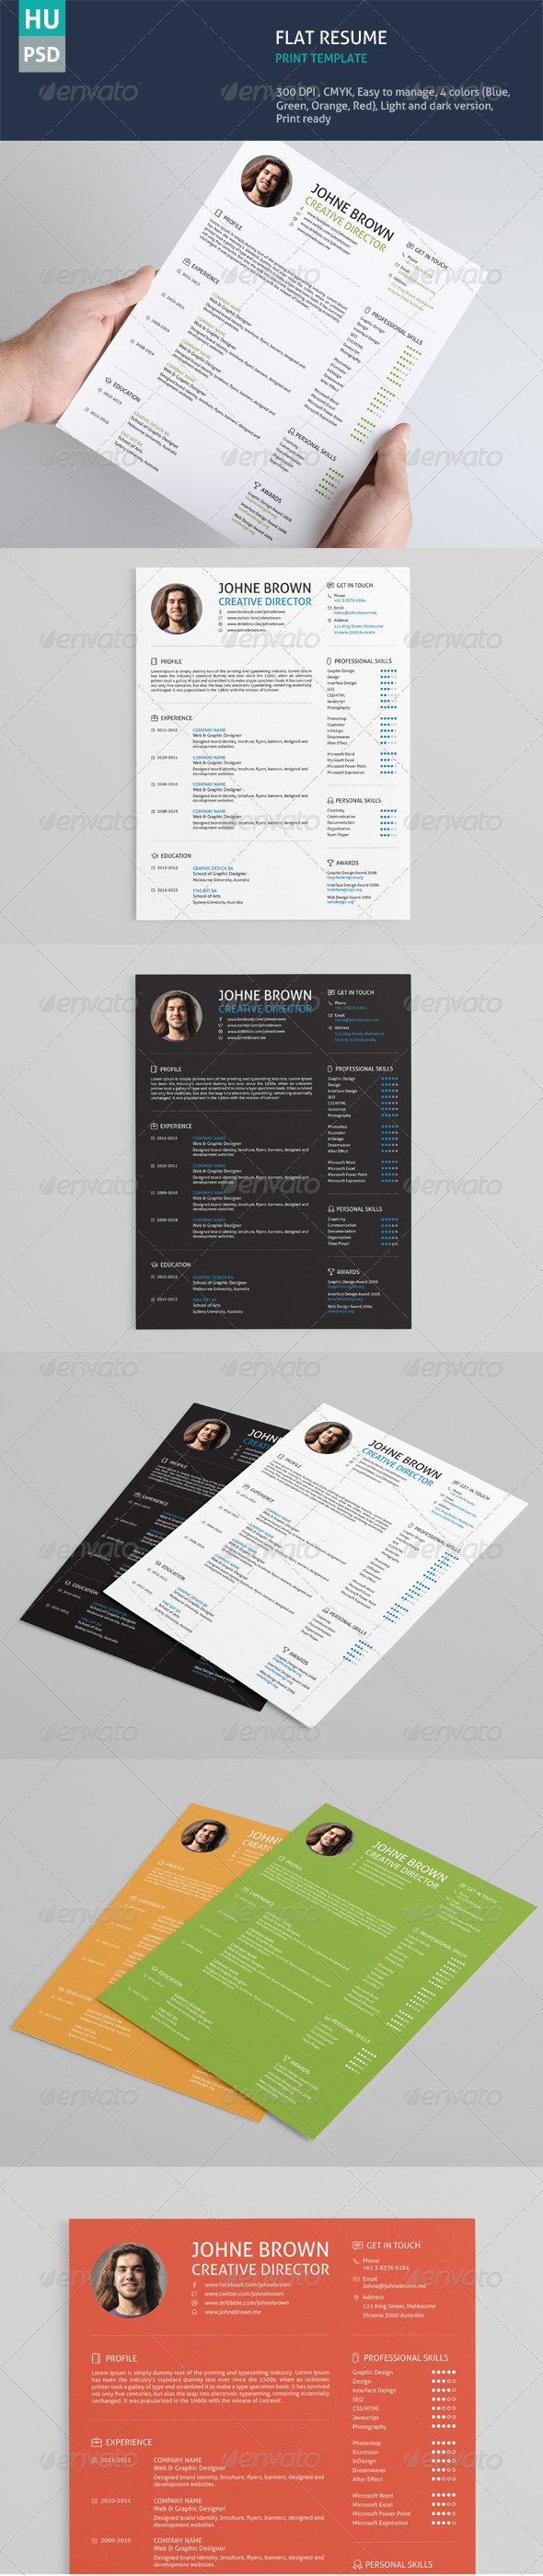 GraphicRiver Flat Resume 6245980